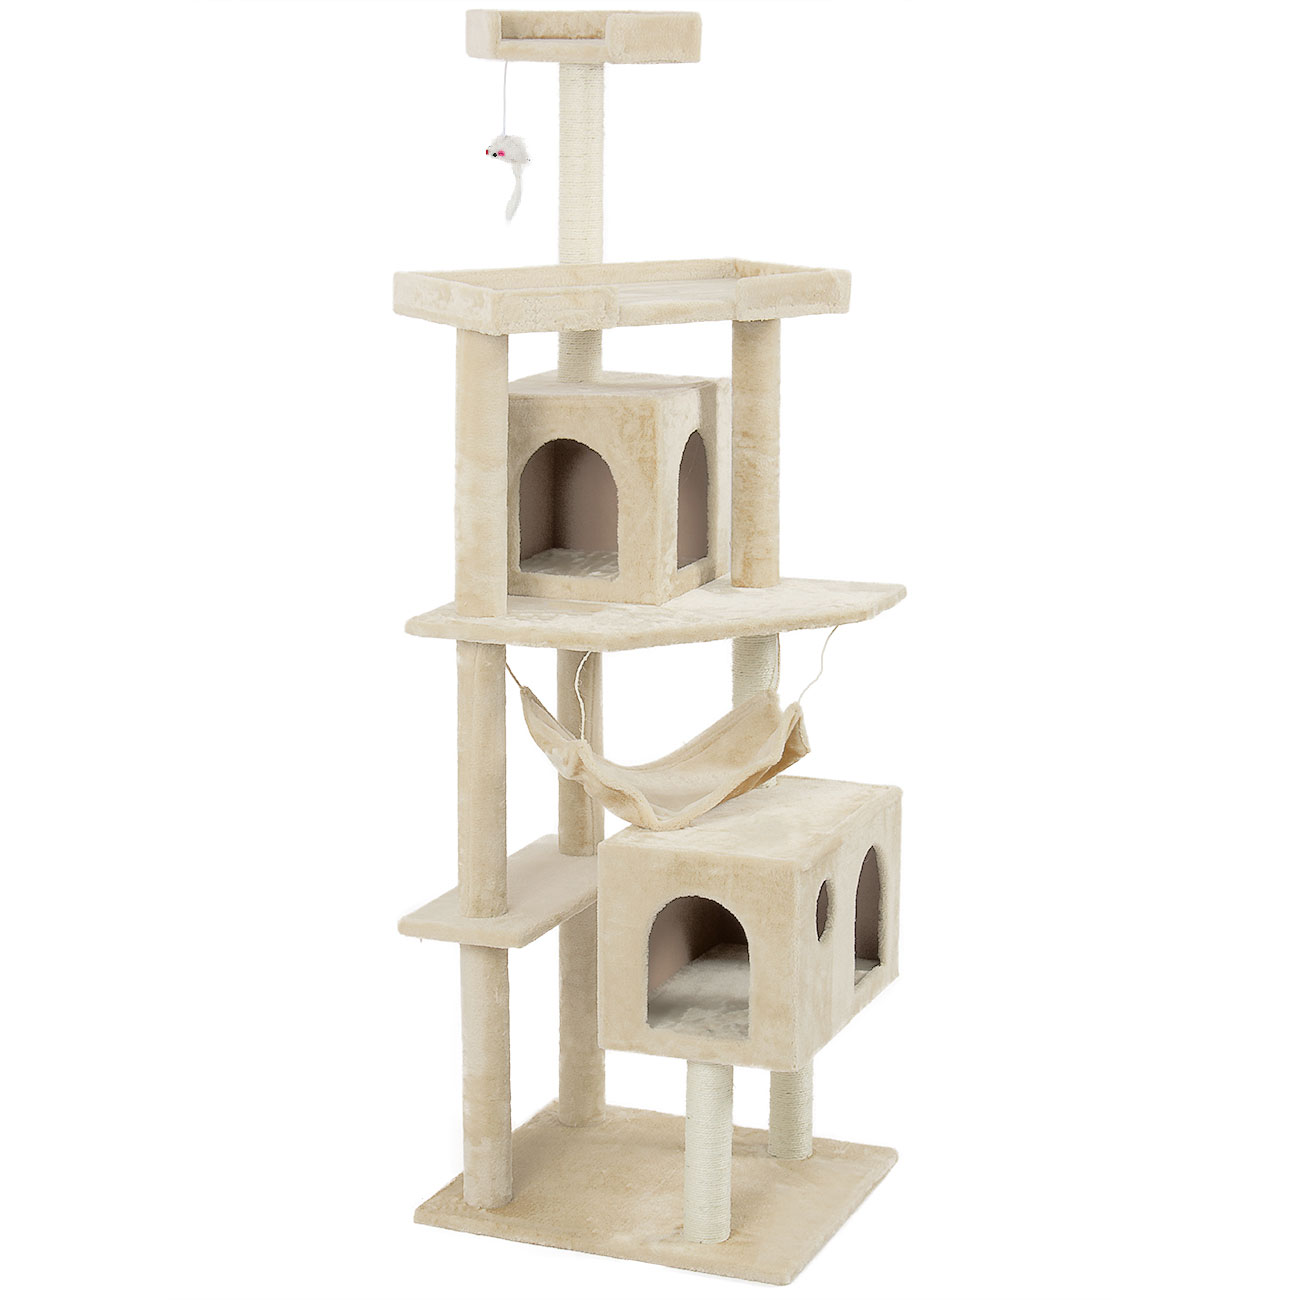 71 inch cat tree tower condo furniture scratch post w for Cat tower with hammock